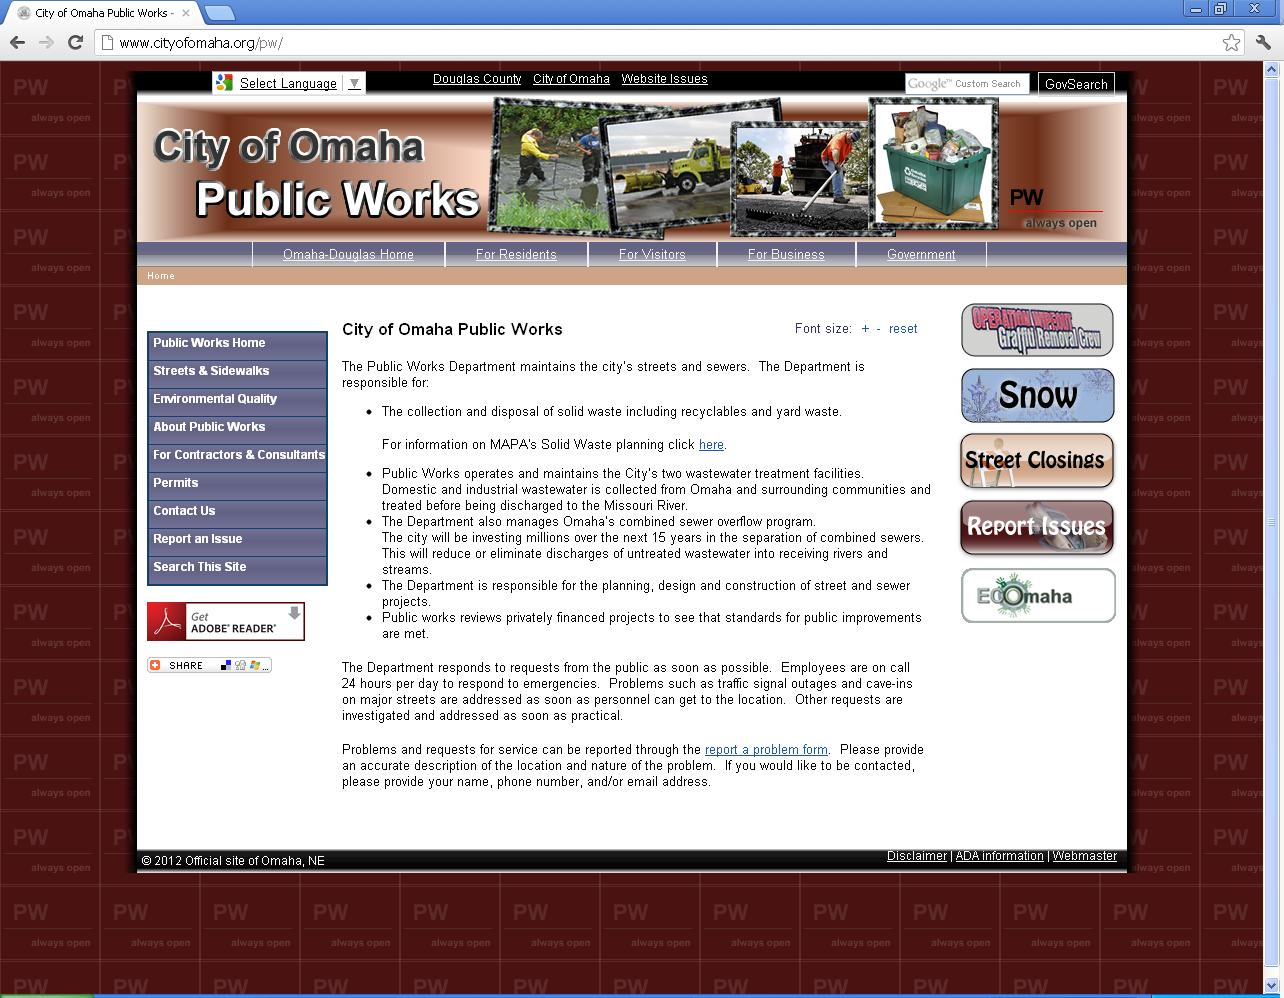 Accessing Public Works Website